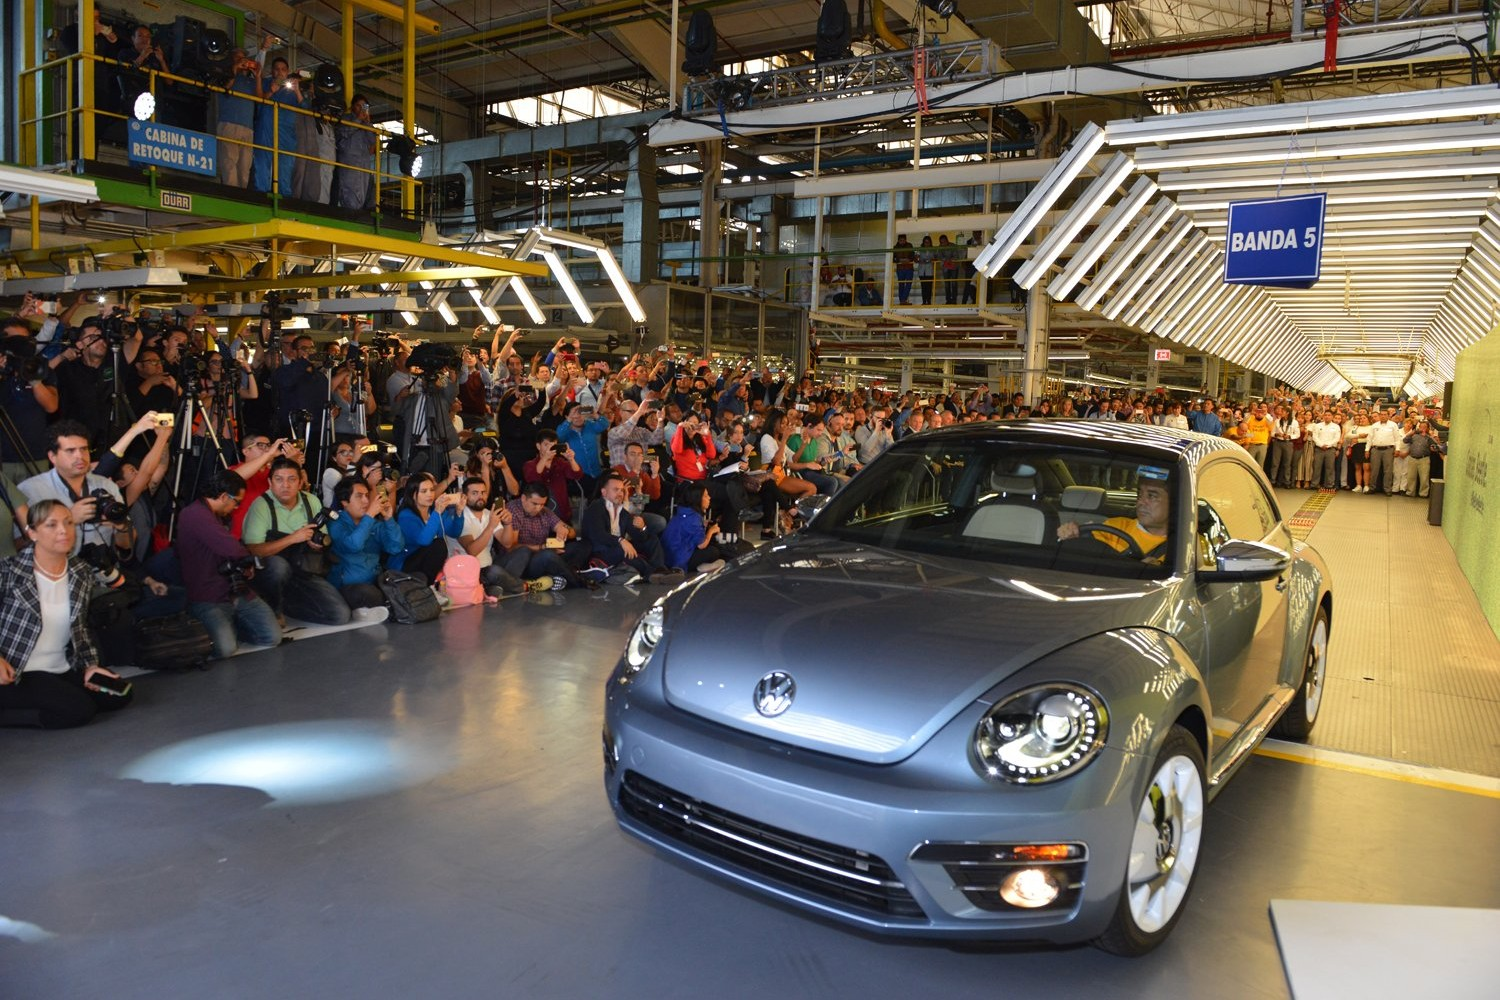 News on the Volkswagen Beetle, Snapchat and WarnerMedia's Donna Speciale: Wake-Up Call